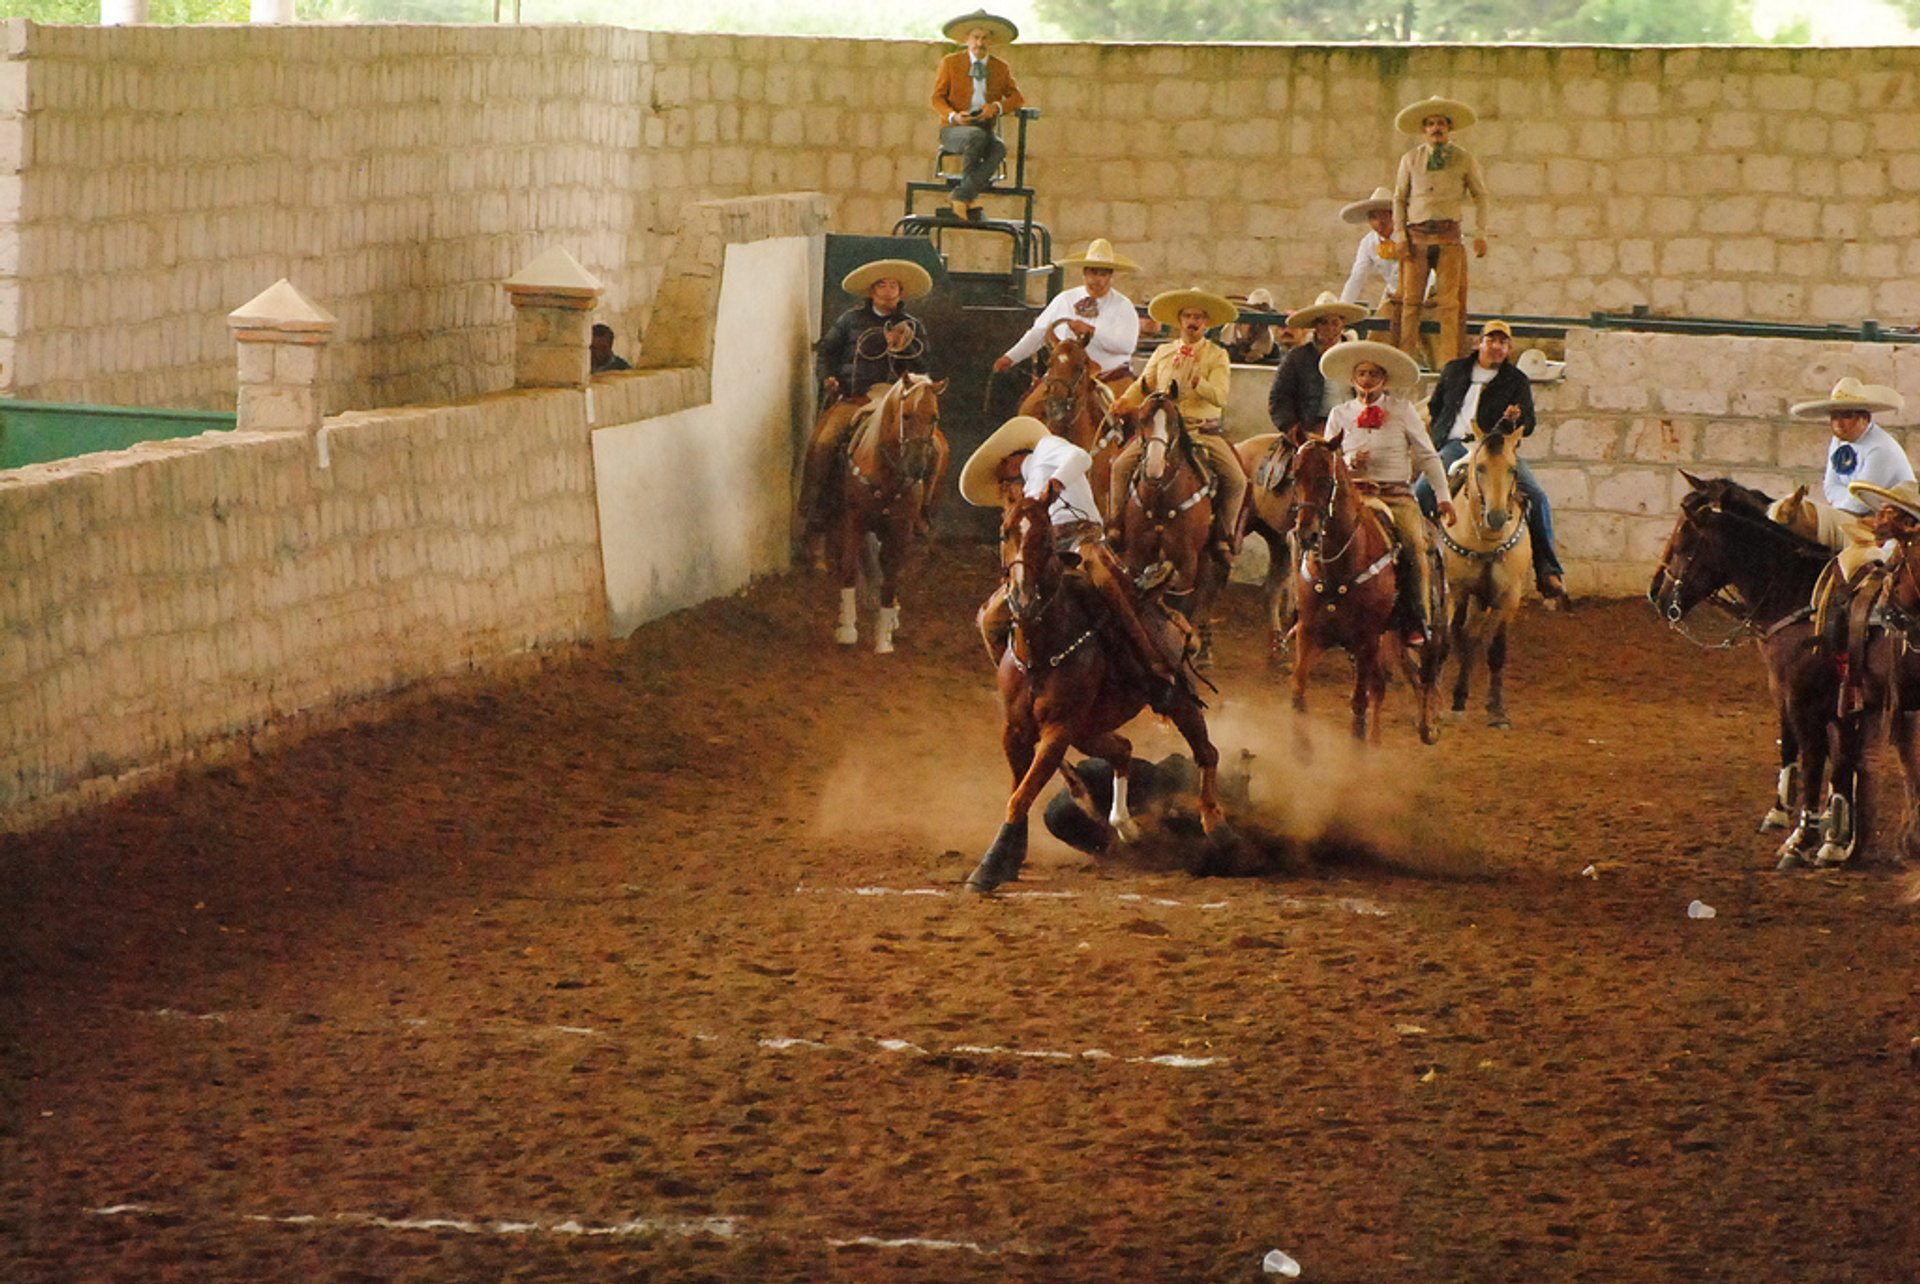 Best time for Mexican Rodeos or Charreadas in Mexico 2019